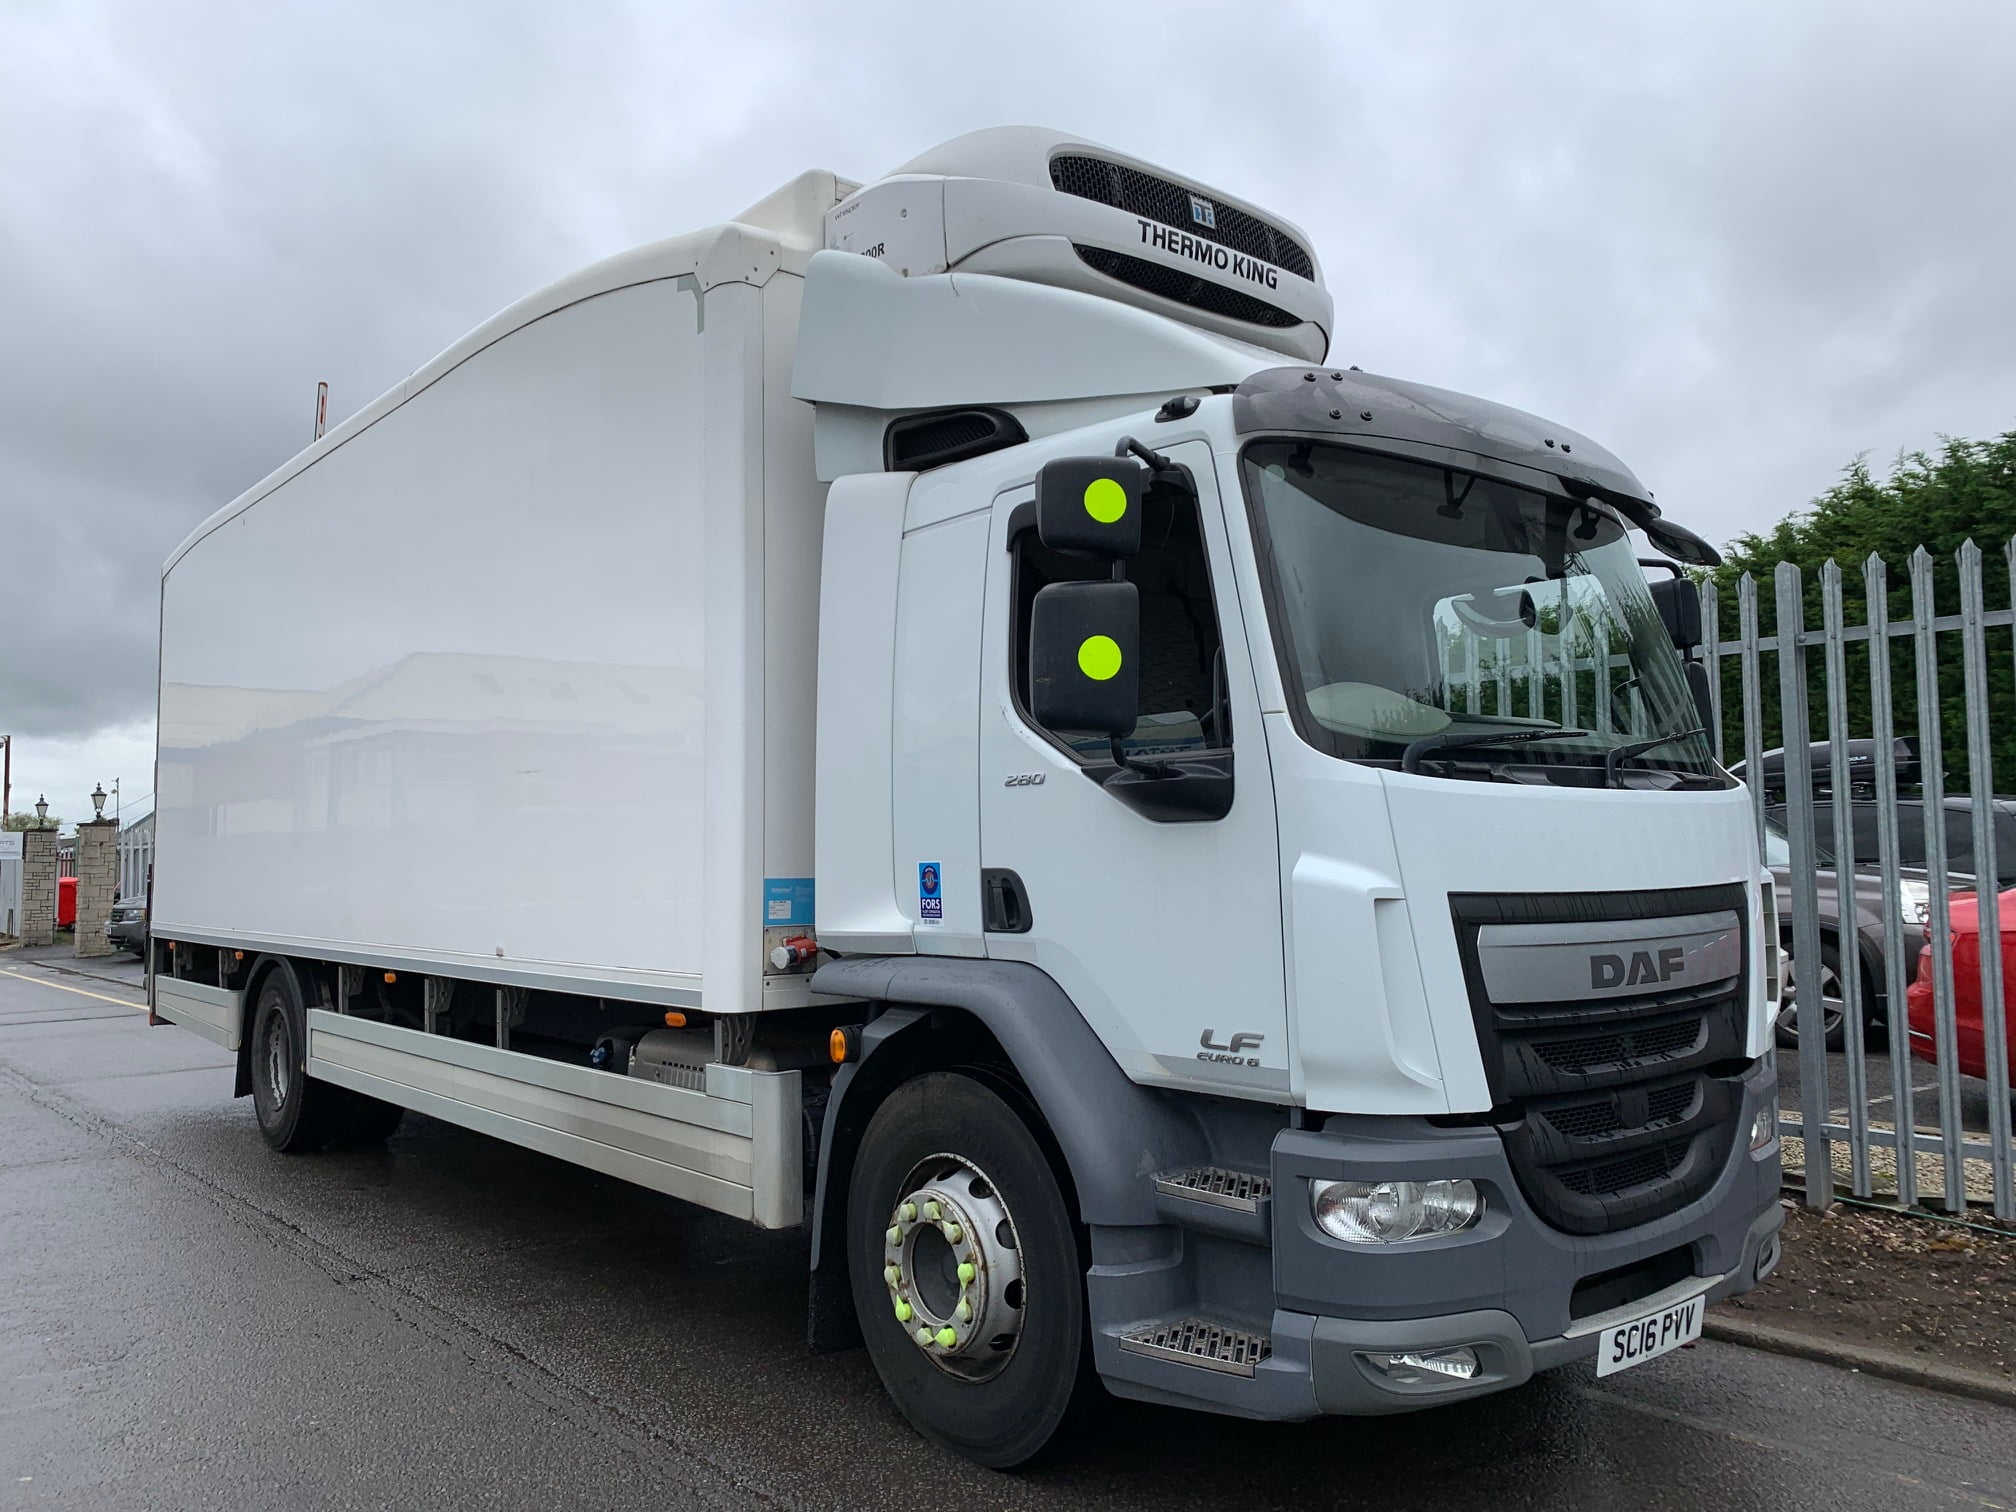 2016 DAF LF Fridge Tailift, 18 Tonne, Euro 6, 280bhp, Dhollandia Column Tailift (1500kg Capacity), Thermoking Fridge Engine, Automatic Gearbox, Rest Cab, Roller Shutter Rear Doors, Near Side Door in Body, Resin Floor, 2 x Loadlock Rails, Reverse Camera, Low Mileage, Choice & Warranty Available.